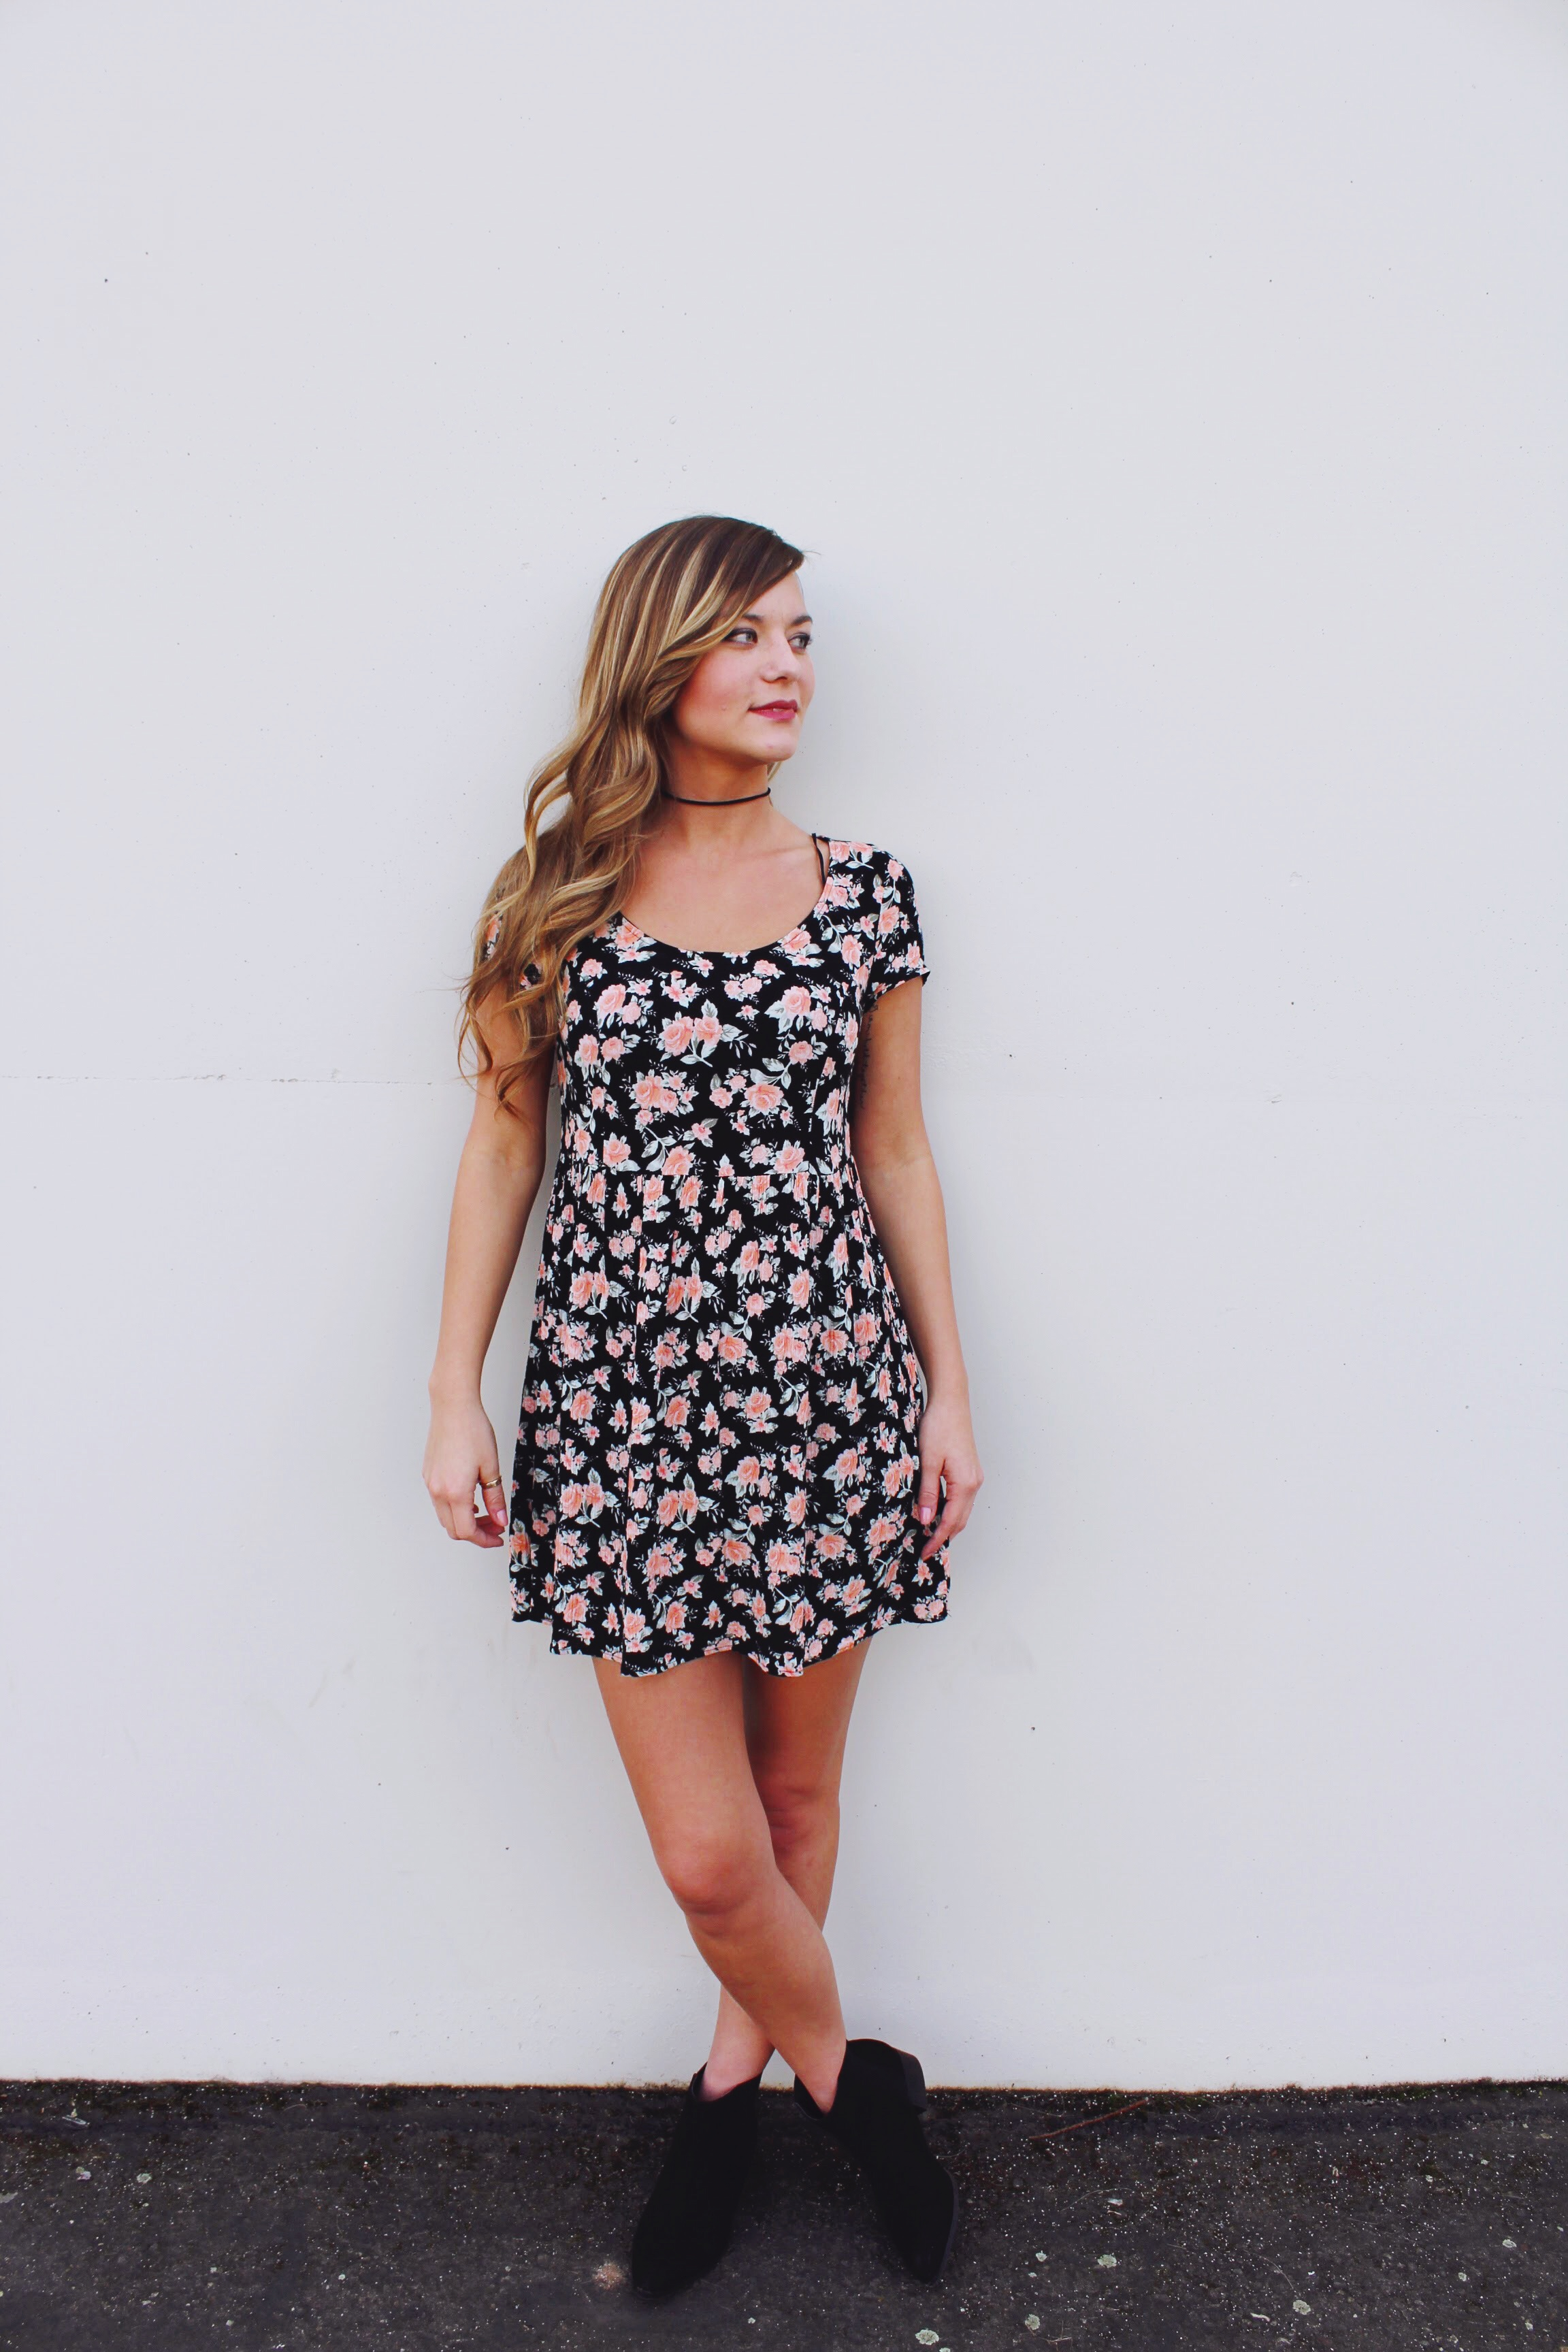 Floral 90's style dress with black suede choker